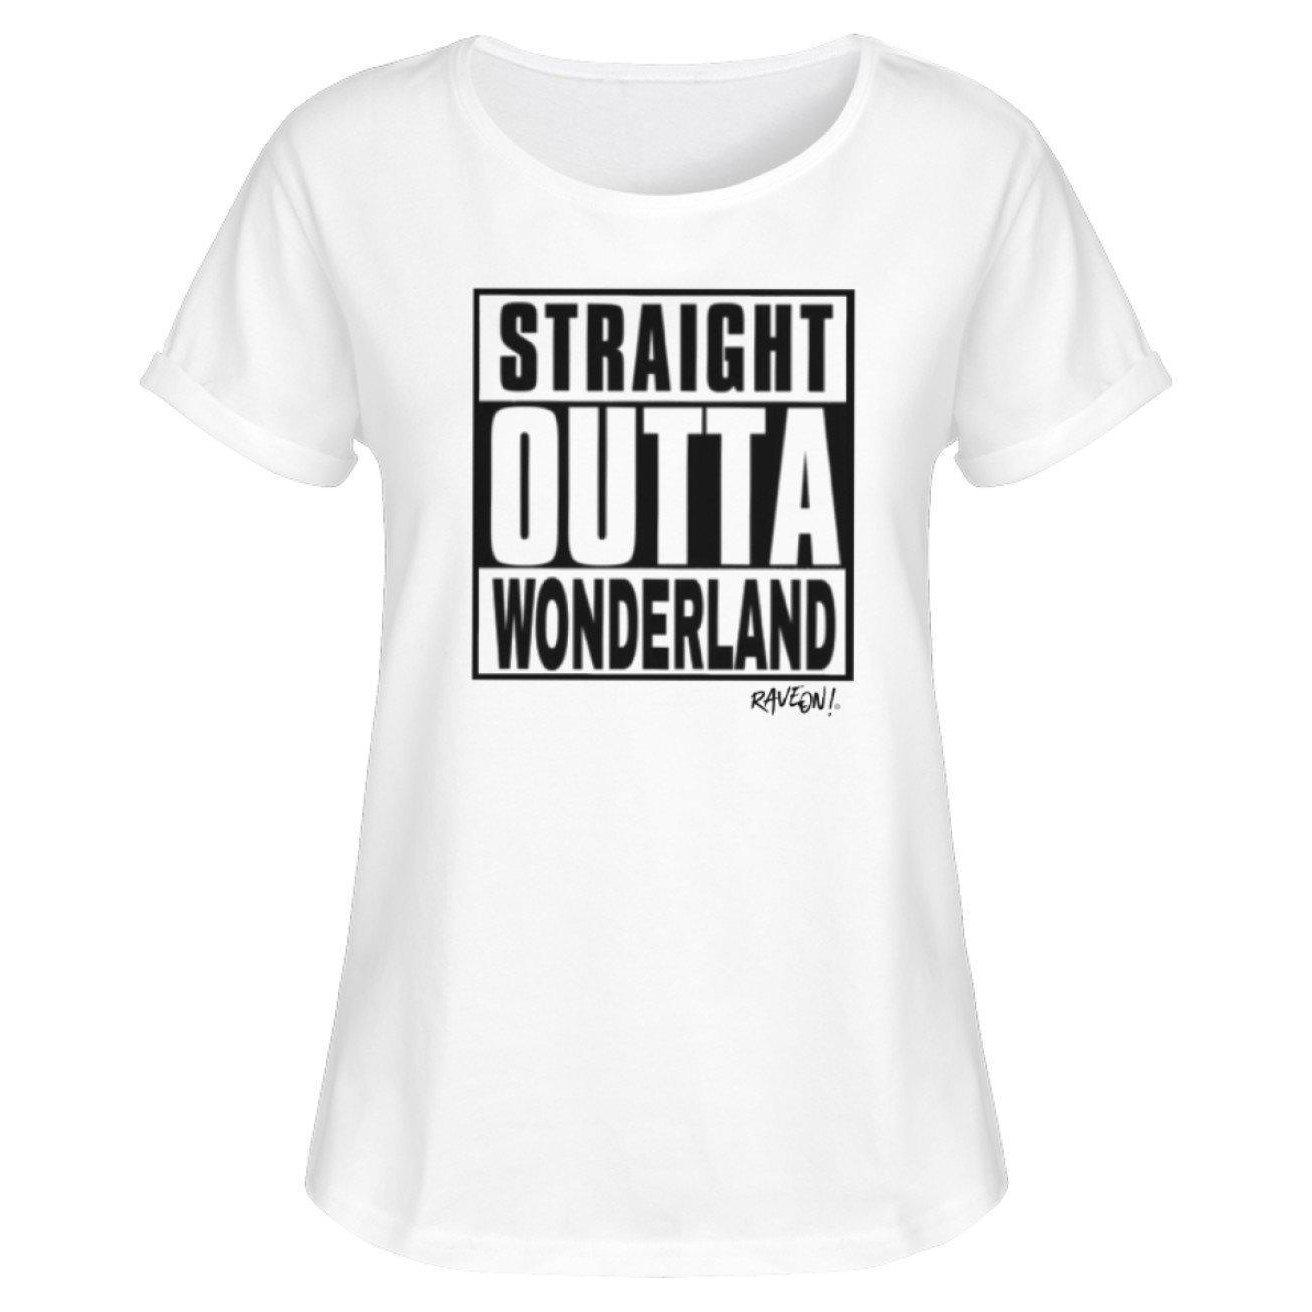 STRAIGHT OUTTA WONDERLAND by Rave On!® - Women RollUp Shirt Women Rollup Shirt White / S - Rave On!® the club & techno scene shop for cool young fashion streetwear style & fashion outfits + sexy festival 420 stuff